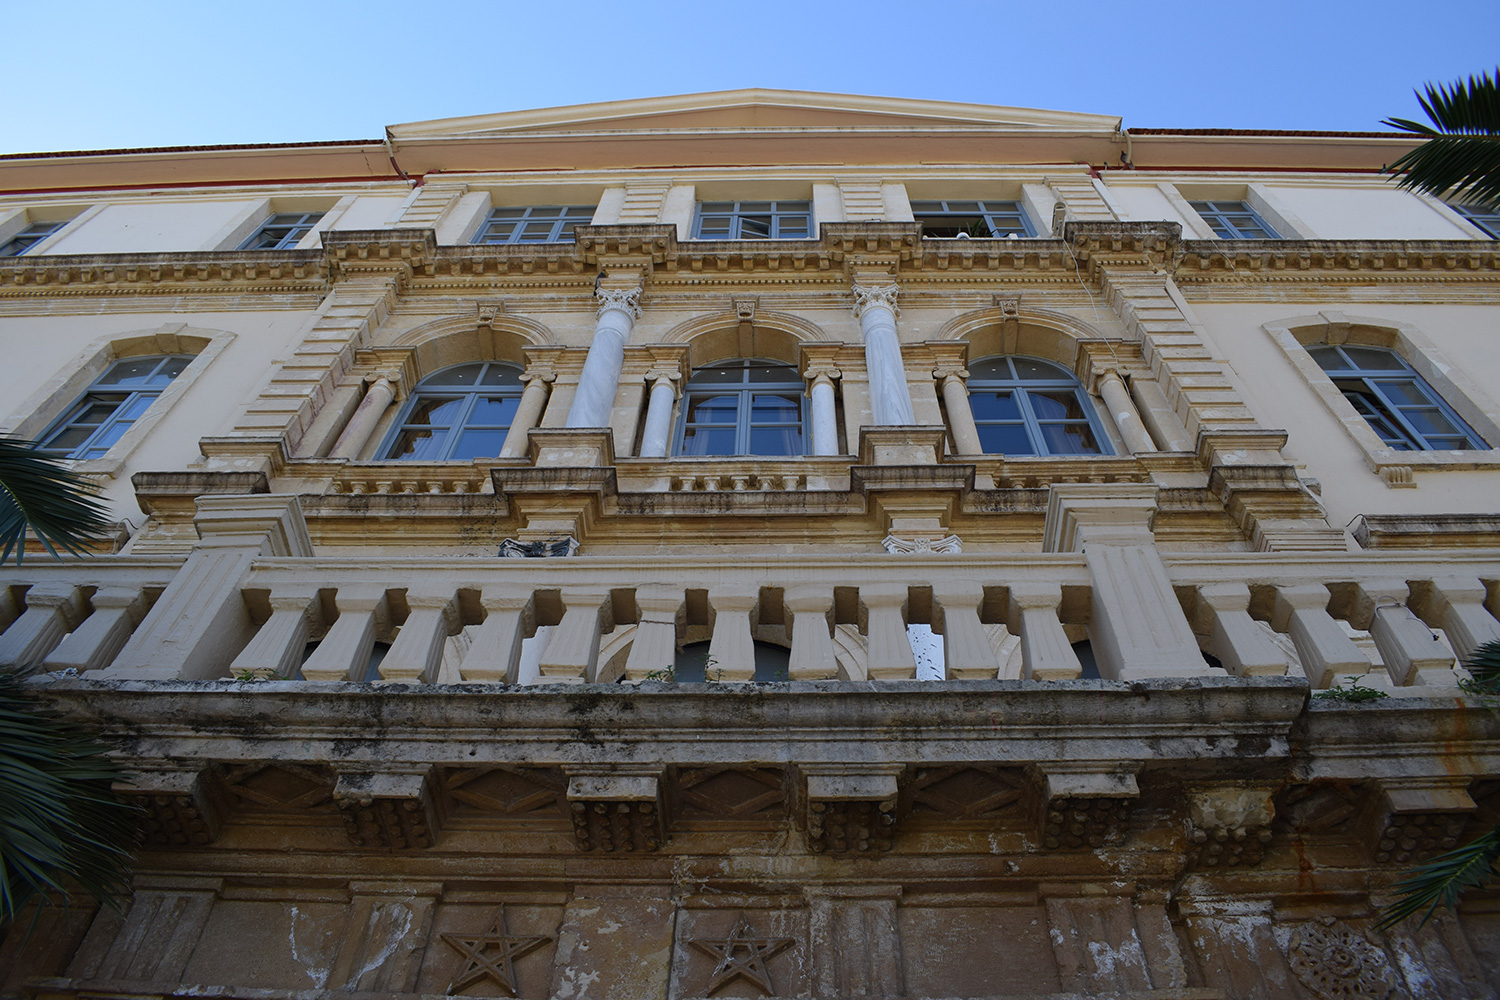 The Courts of Chania from below